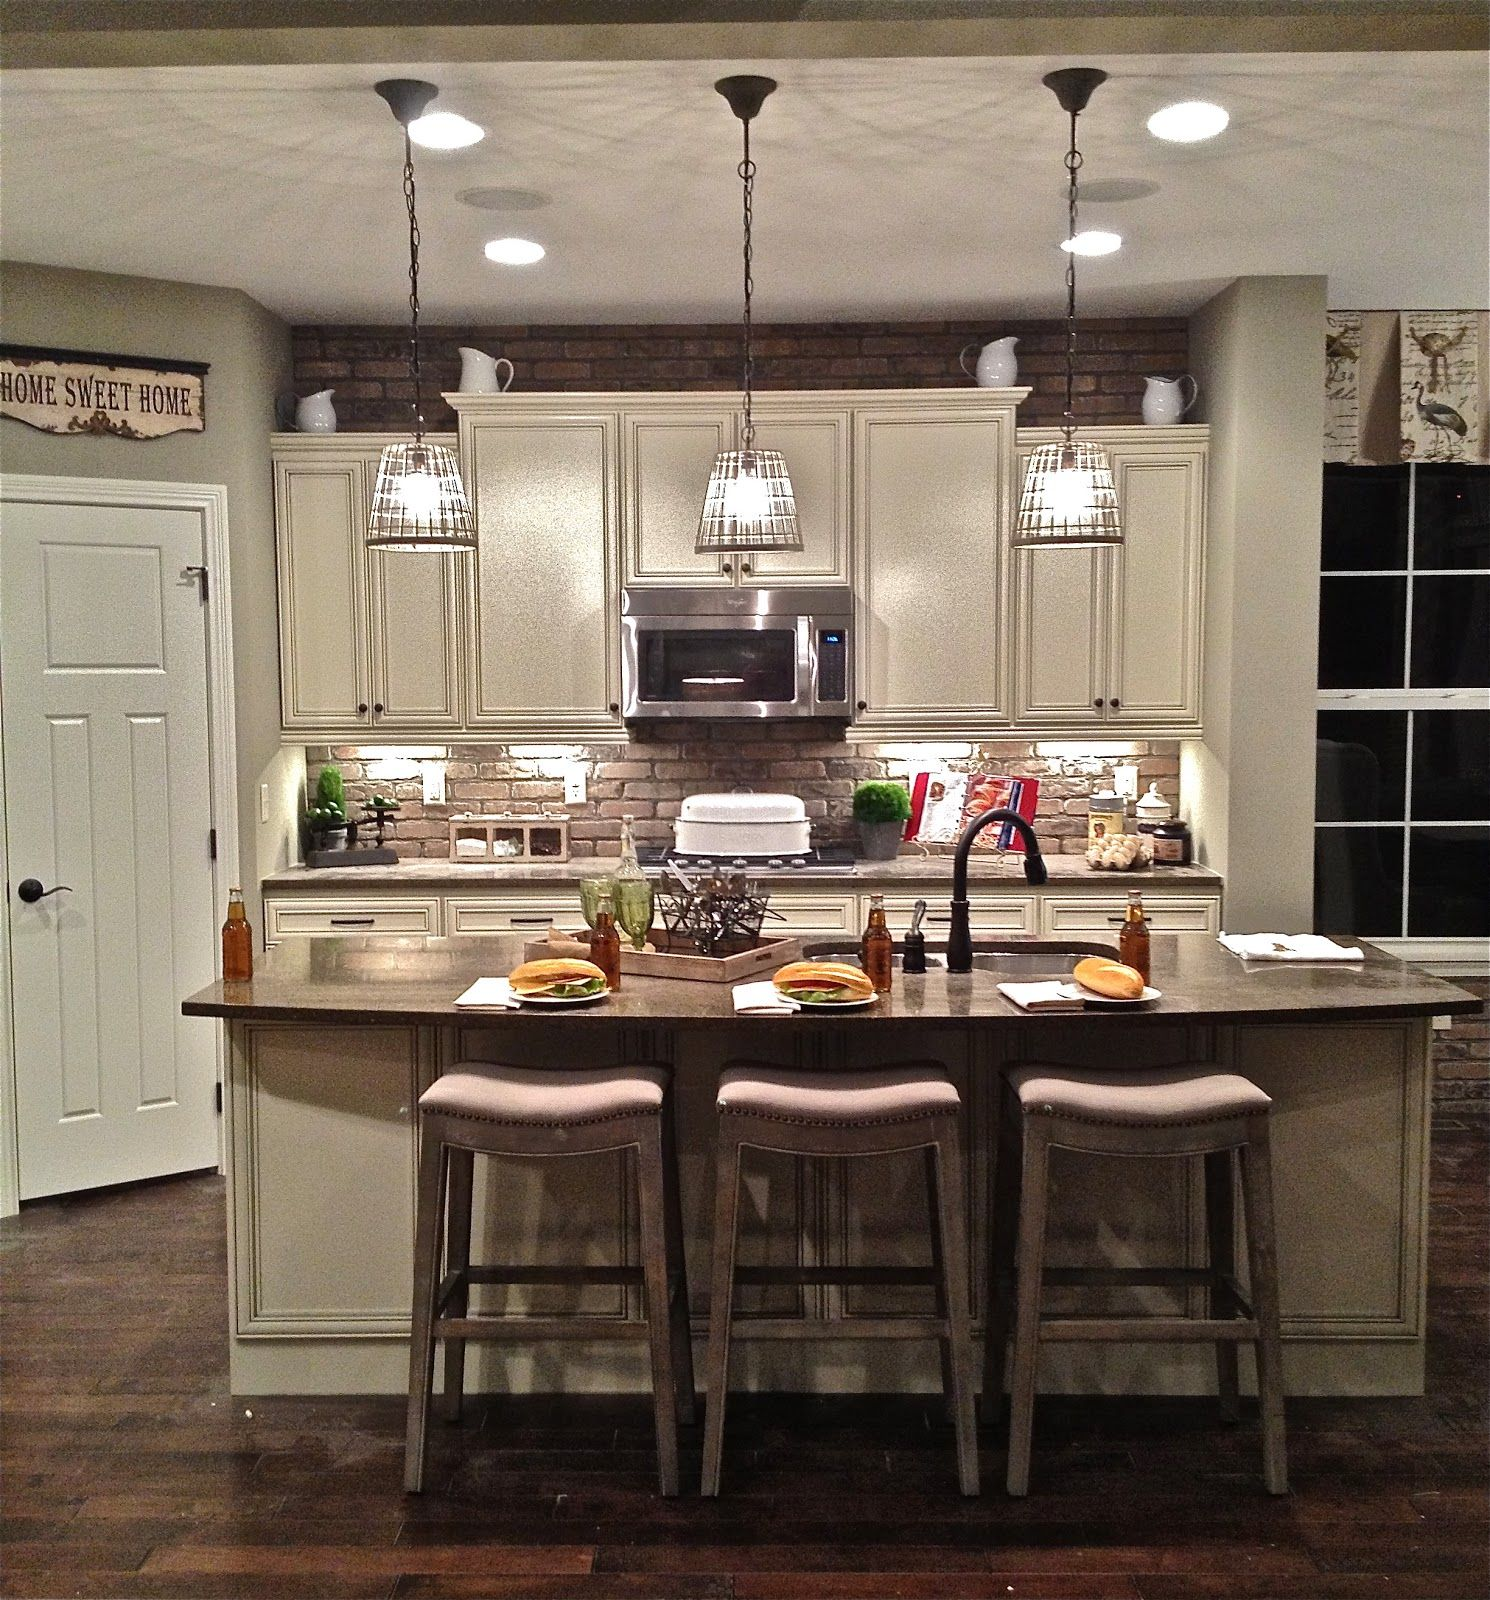 Illuminating Kitchen Lighting: Interior, Three Basket Unique Kitchen Island Lighting With